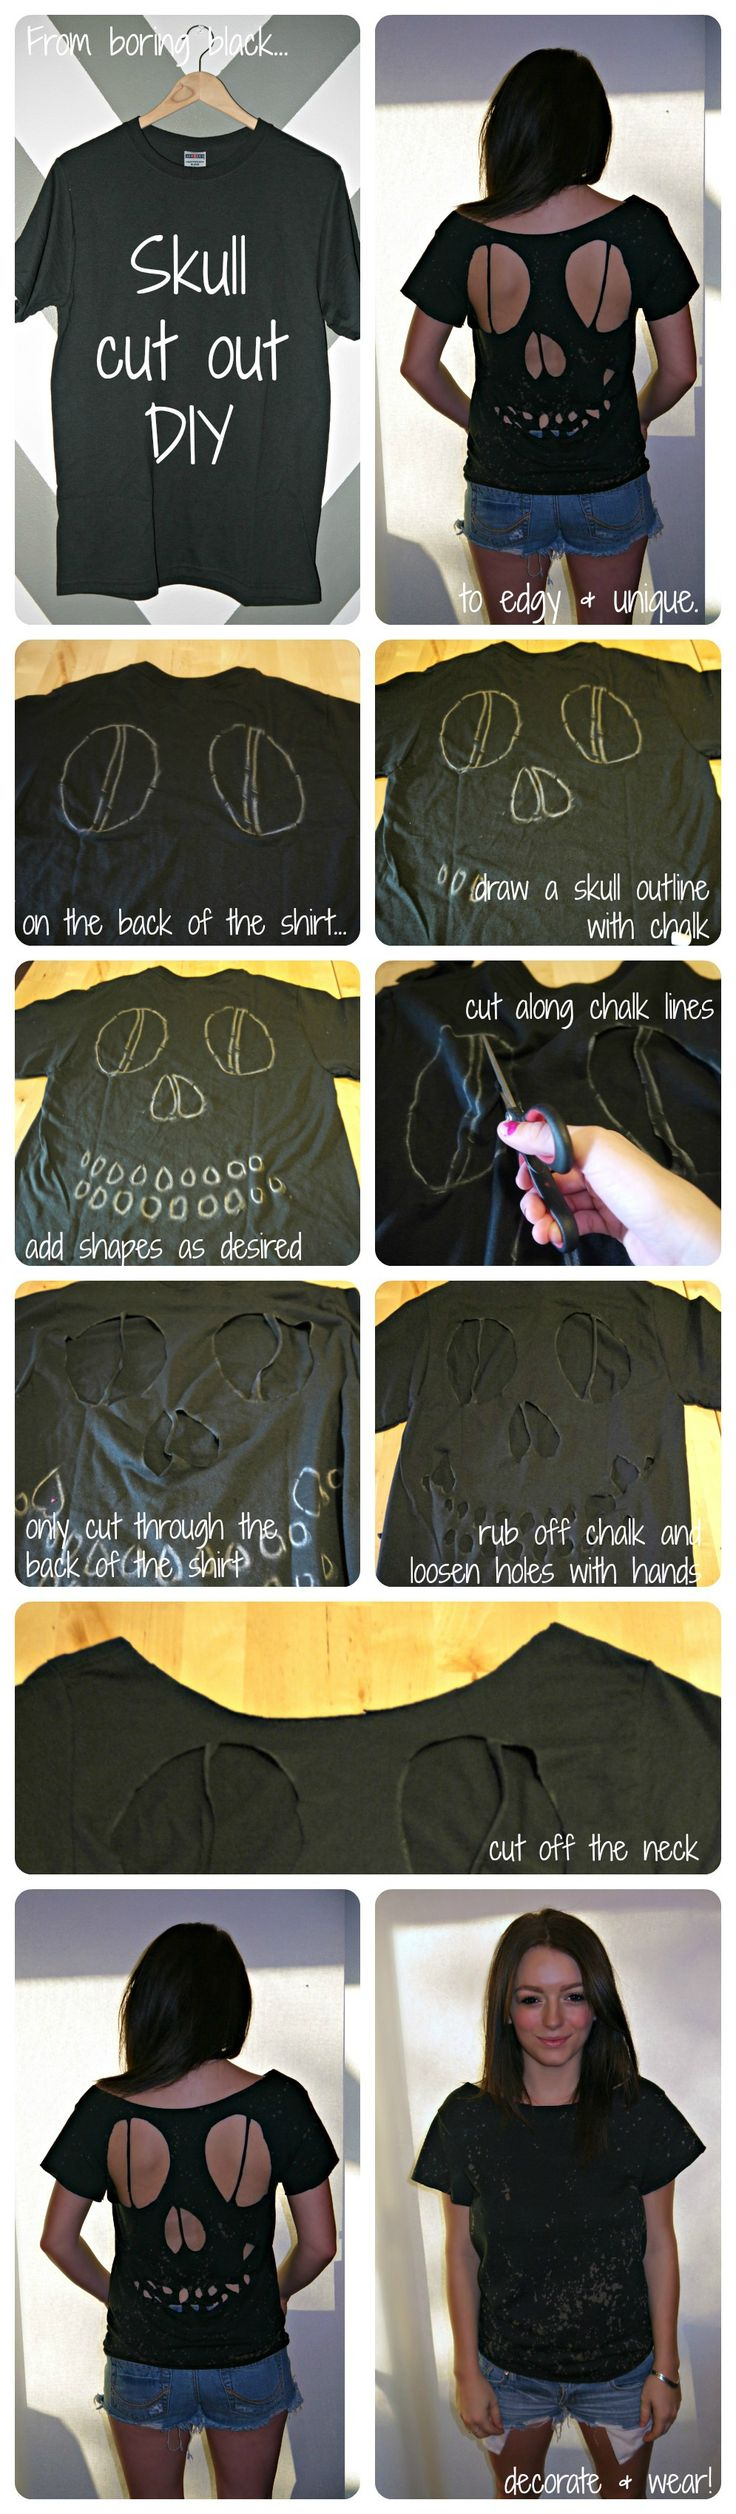 Cute for the junior high kids to wear on Halloween when they are too old to dress up at school!! Skull T-shirt #DIY for #Halloween! @Jill Meyers Meyers Meyers kropp